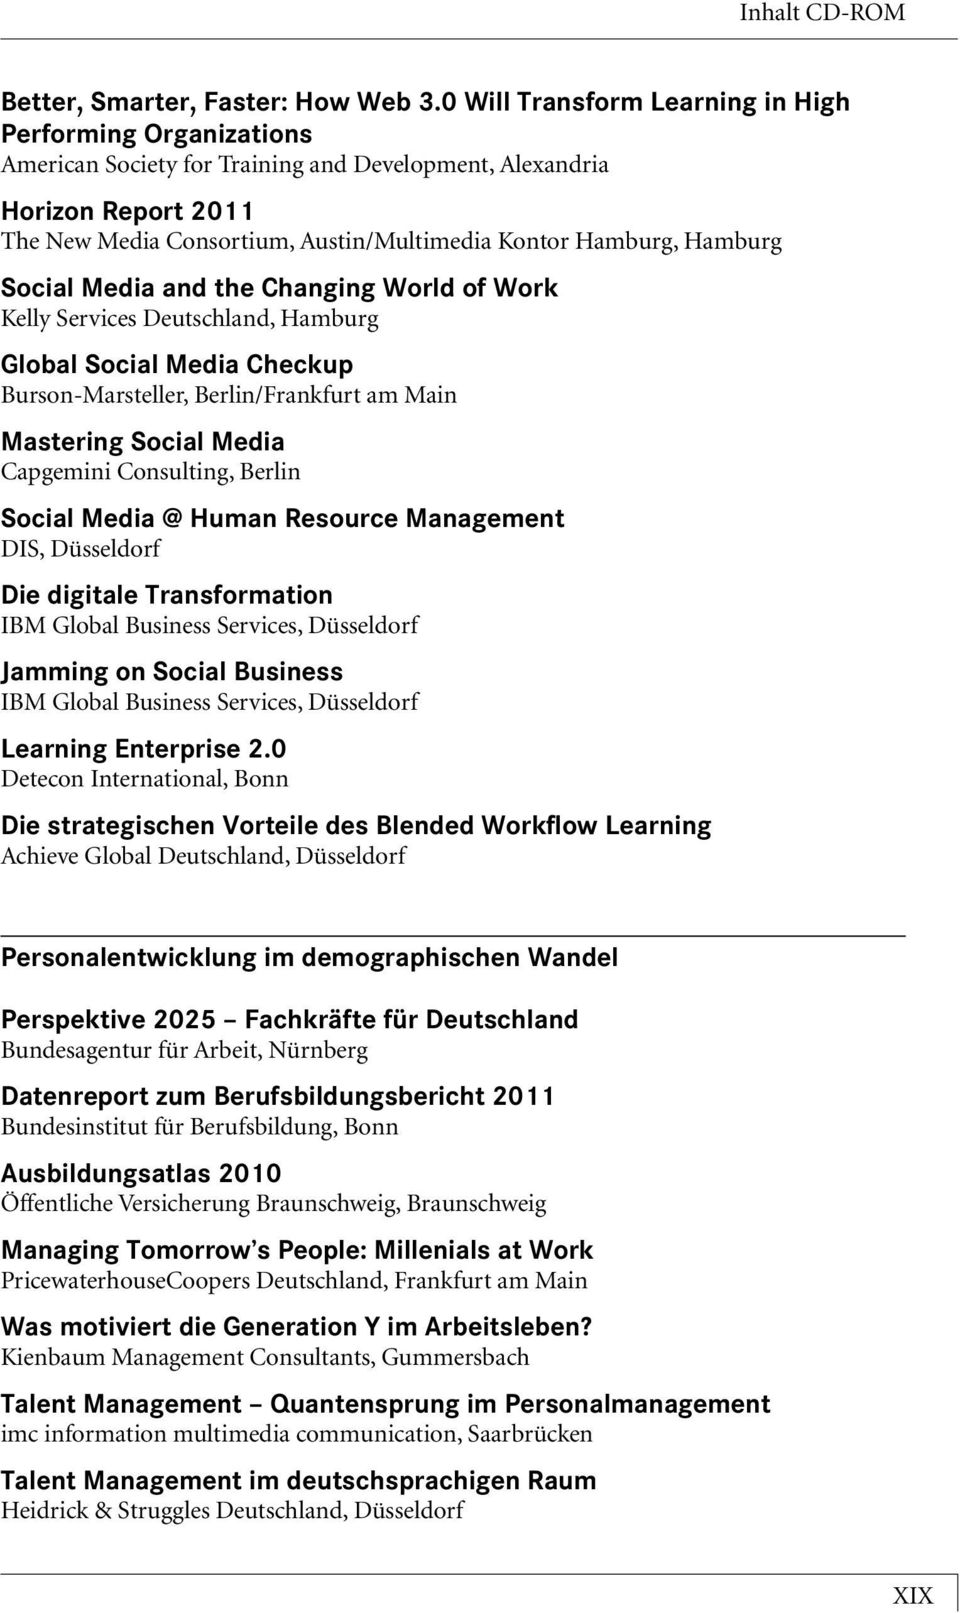 Hamburg Social Media and the Changing World of Work Kelly Services Deutschland, Hamburg Global Social Media Checkup Burson-Marsteller, Berlin/Frankfurt am Main Mastering Social Media Capgemini